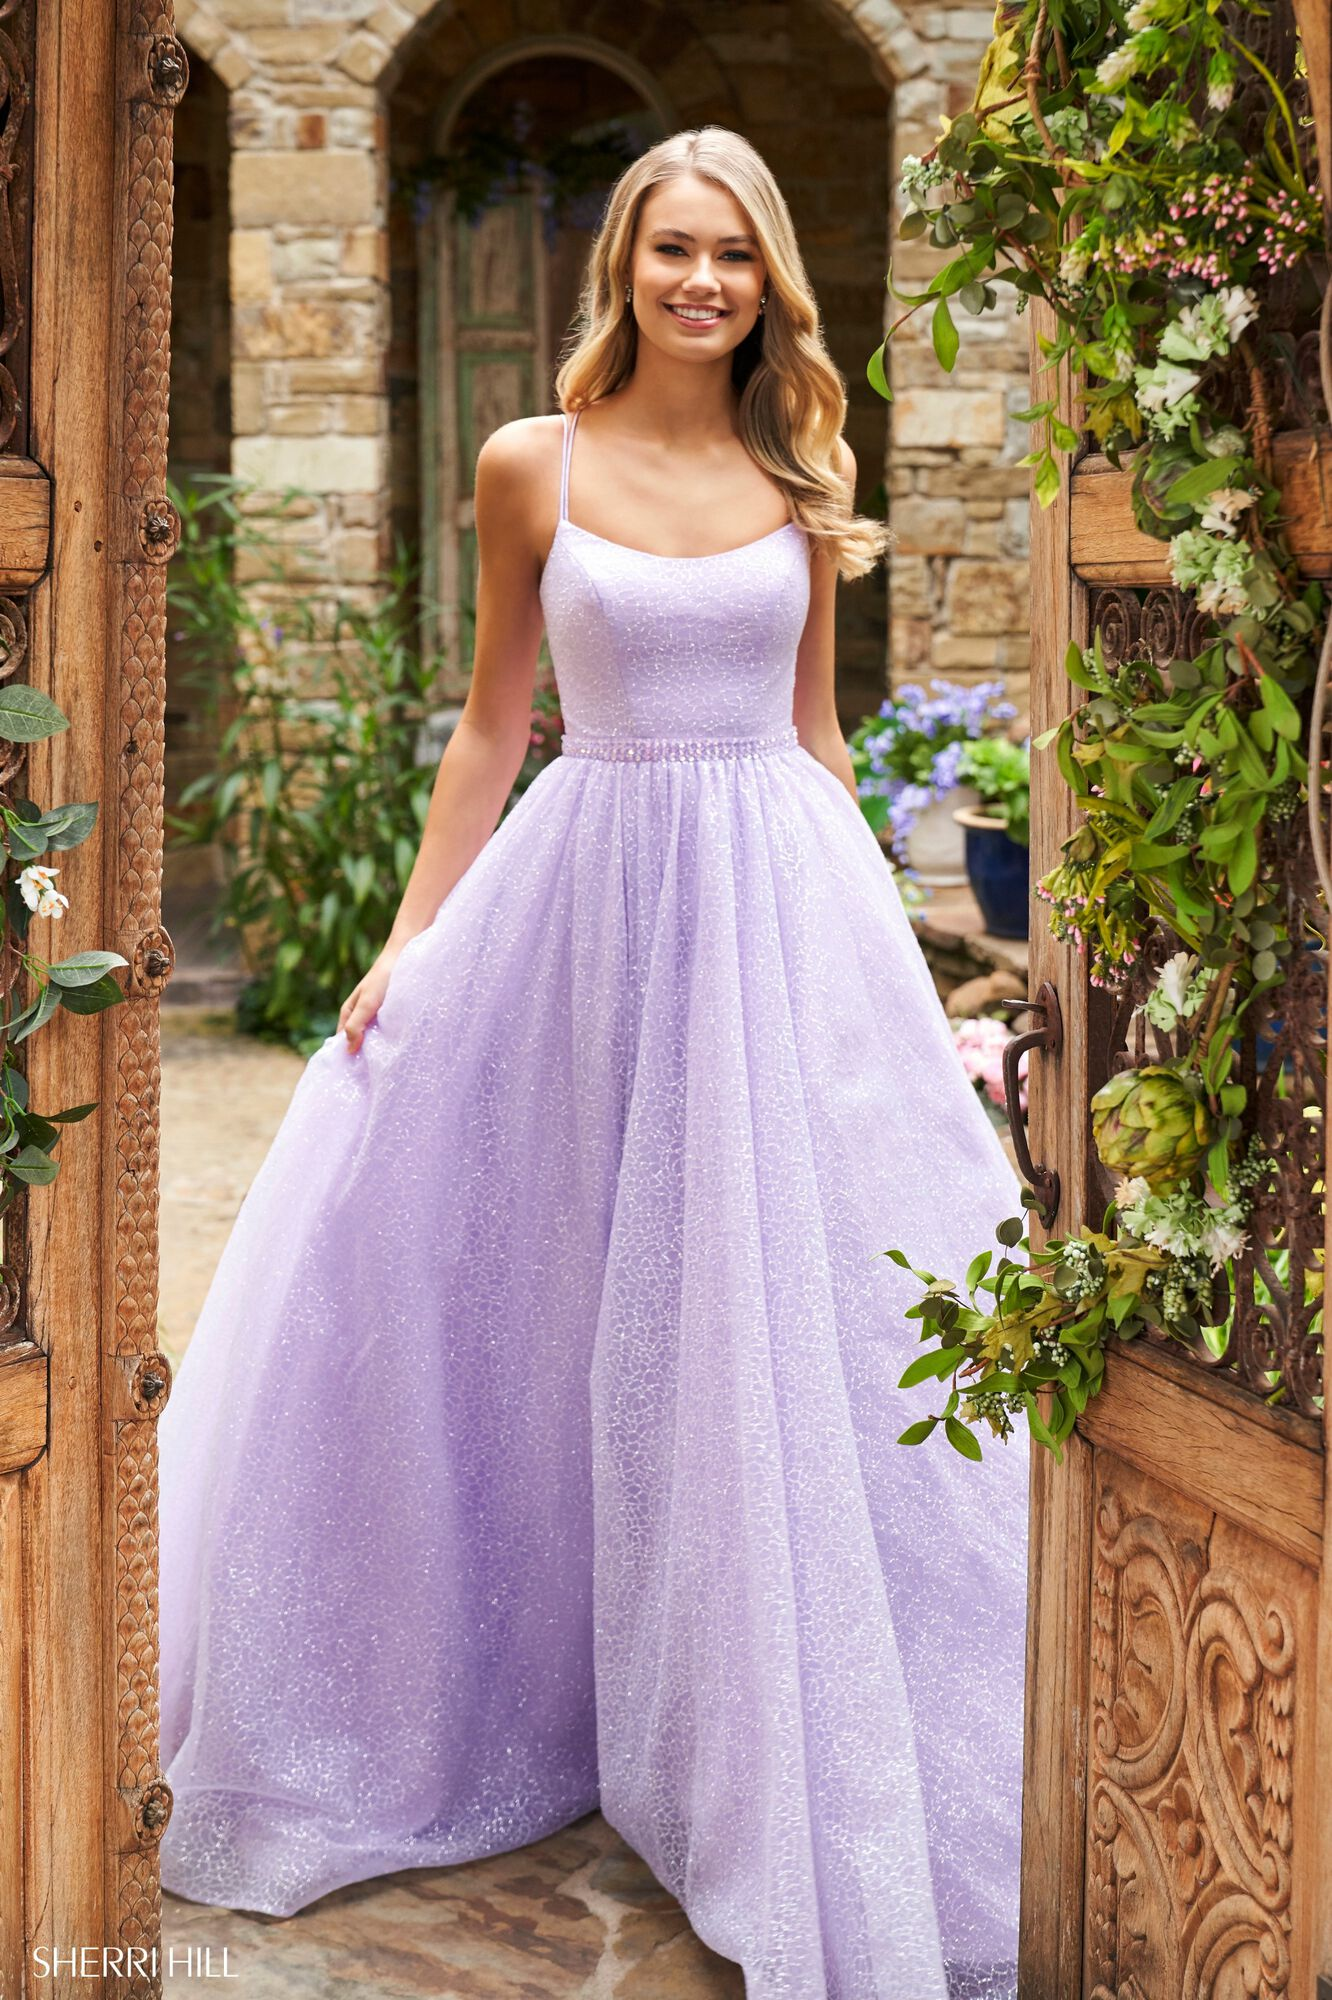 What to Consider when Buying Your Prom Dress